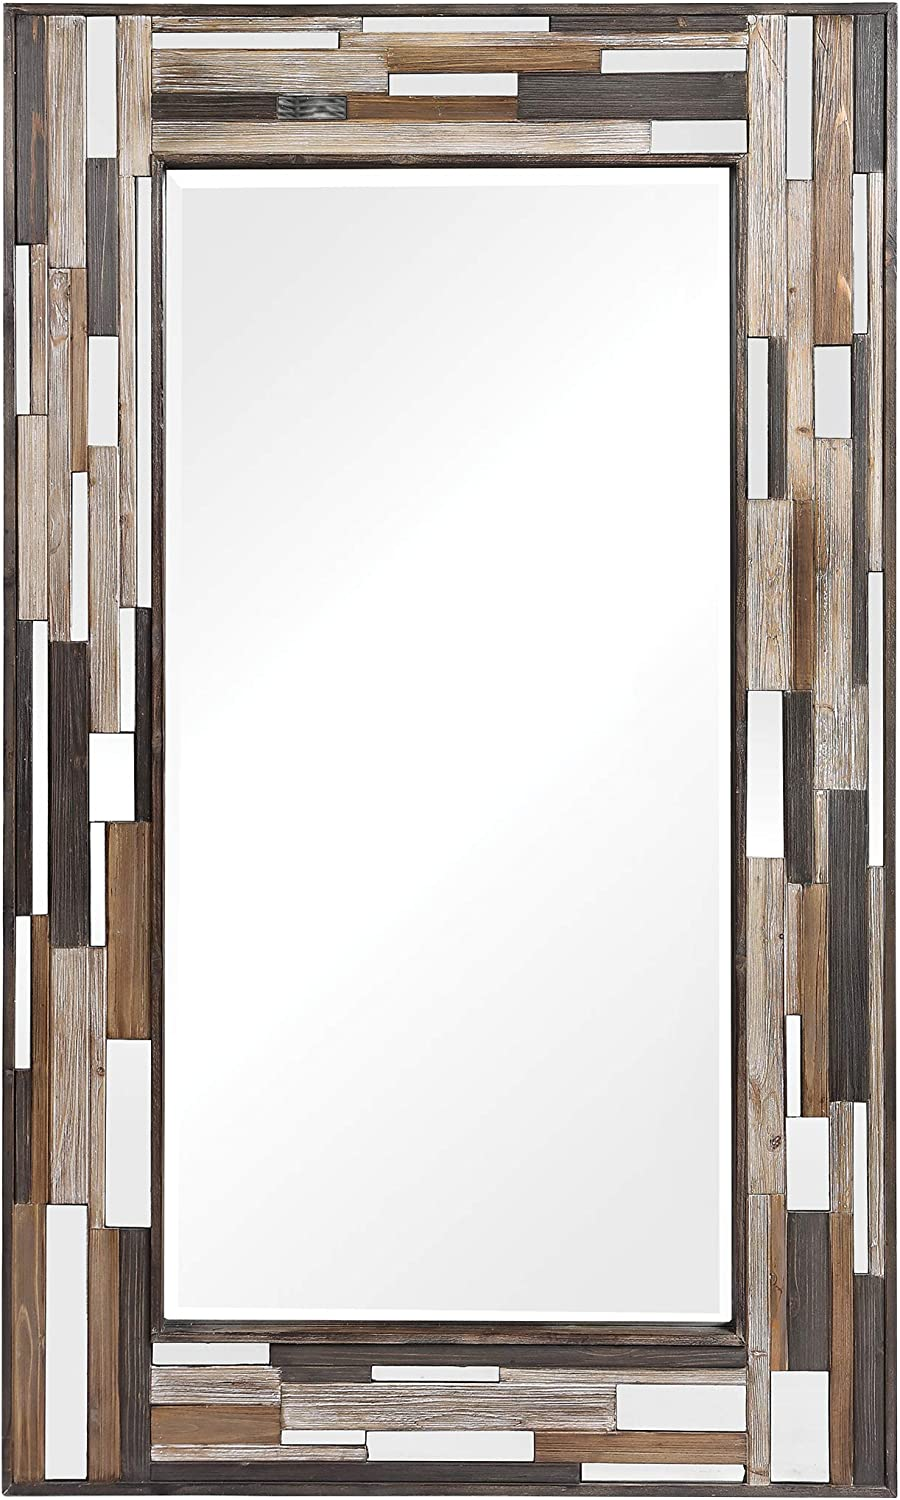 "MY SWANKY HOME Oversize Tiled Mirrored Frame Wall Mirror 75"" Full Length Rustic Mid Century"